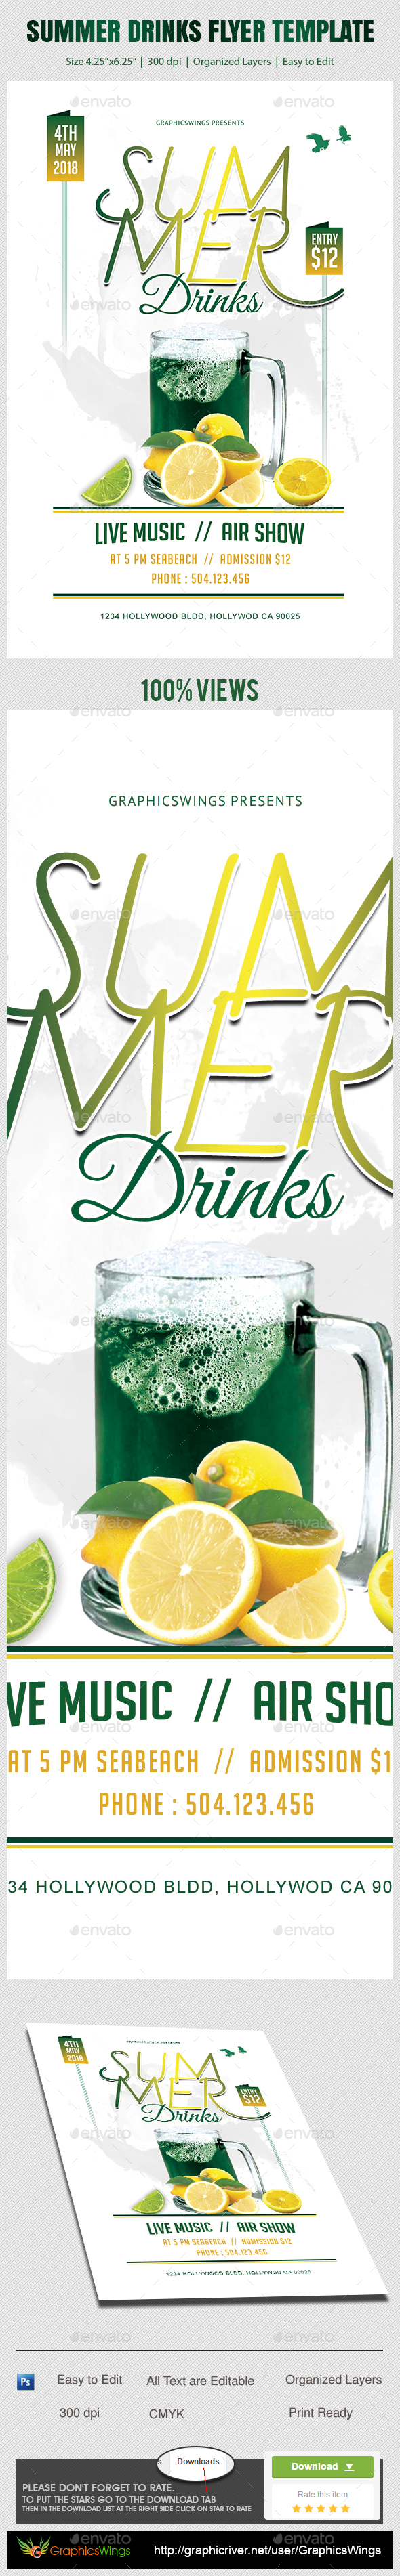 Summer Drinks Flyer Template - Clubs & Parties Events